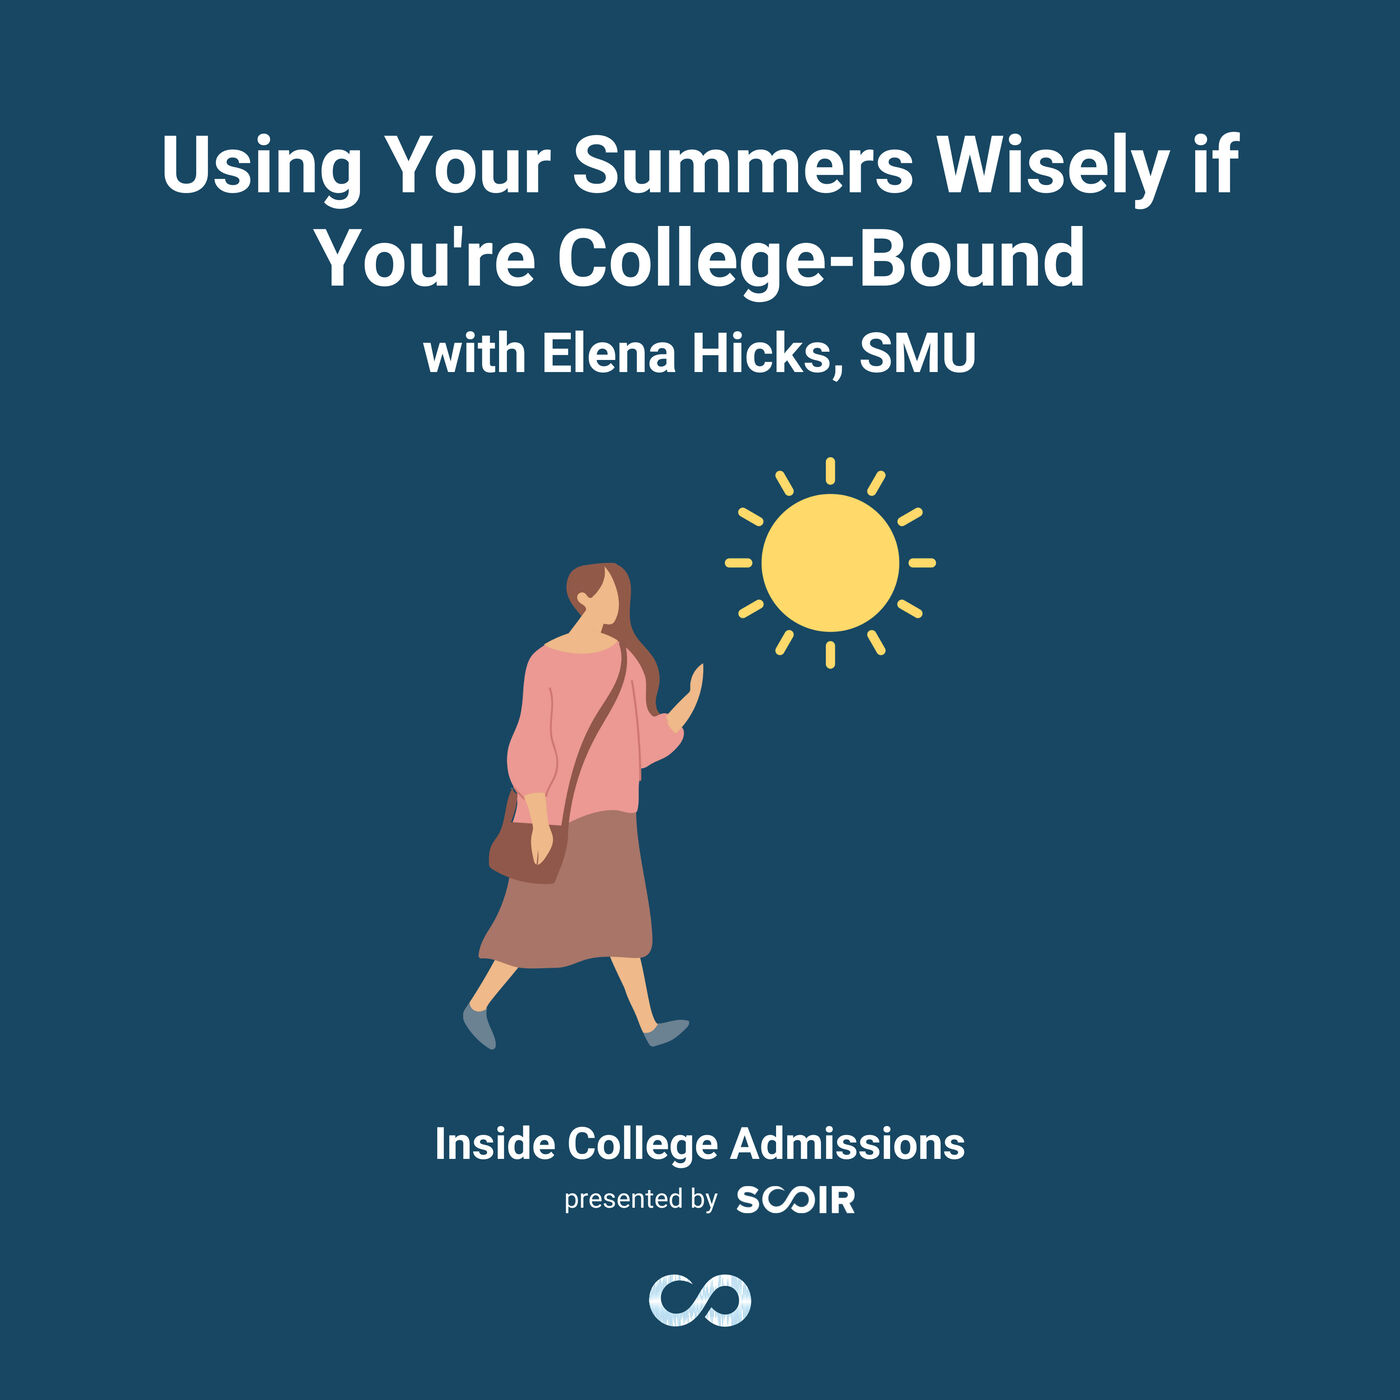 Using Your Summers Wisely if You're College-Bound with Elena Hicks, SMU